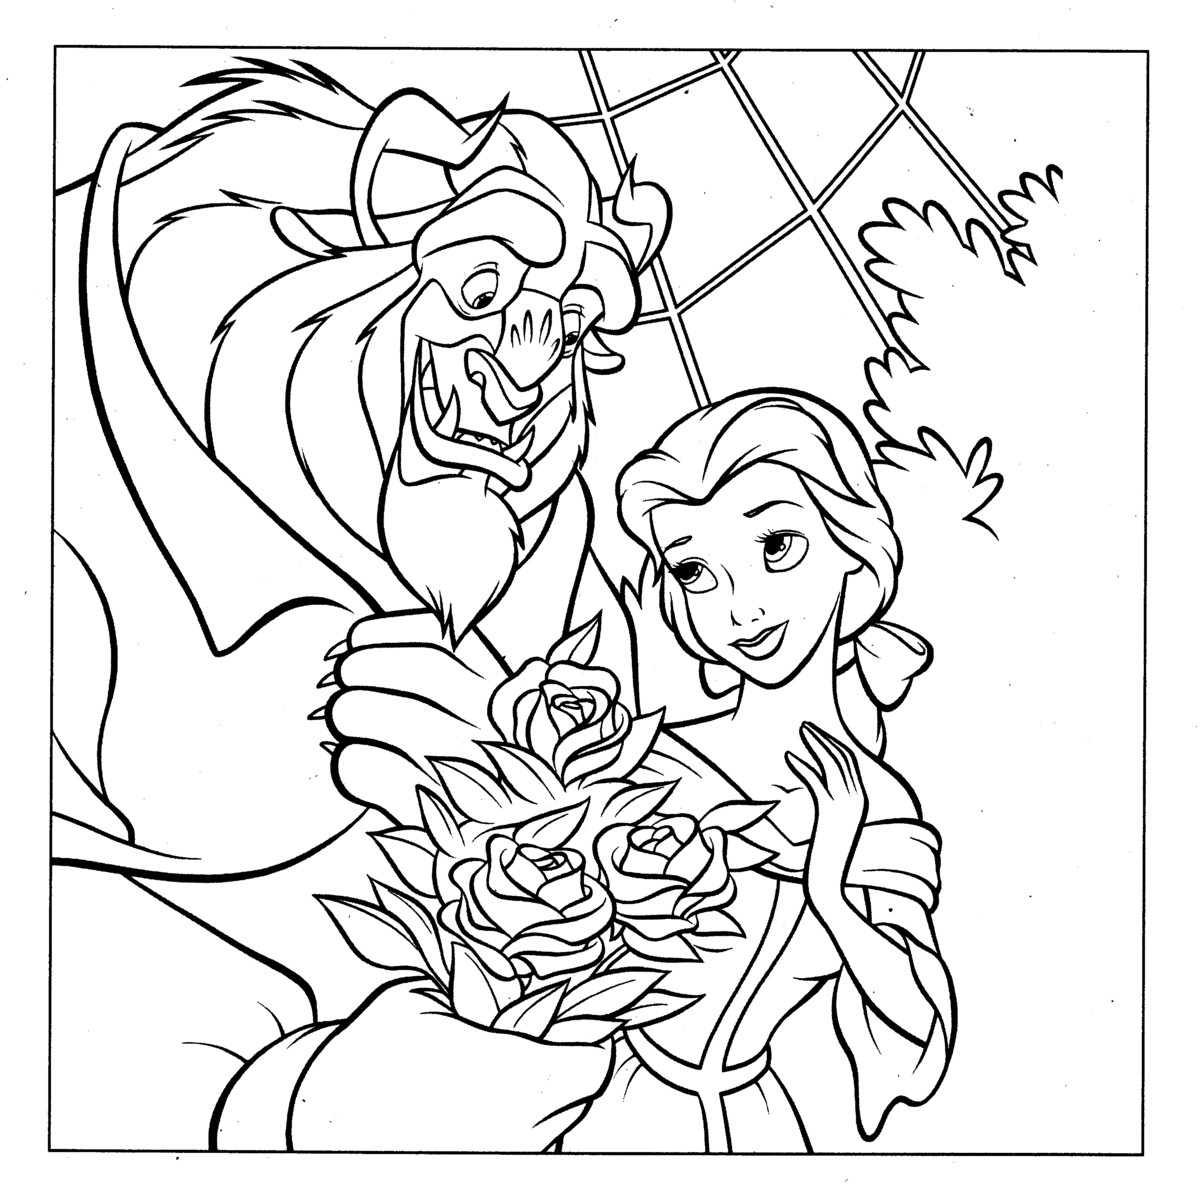 beauty and the beast colouring pages free easy to print beauty and the beast coloring pages the and beauty beast colouring pages